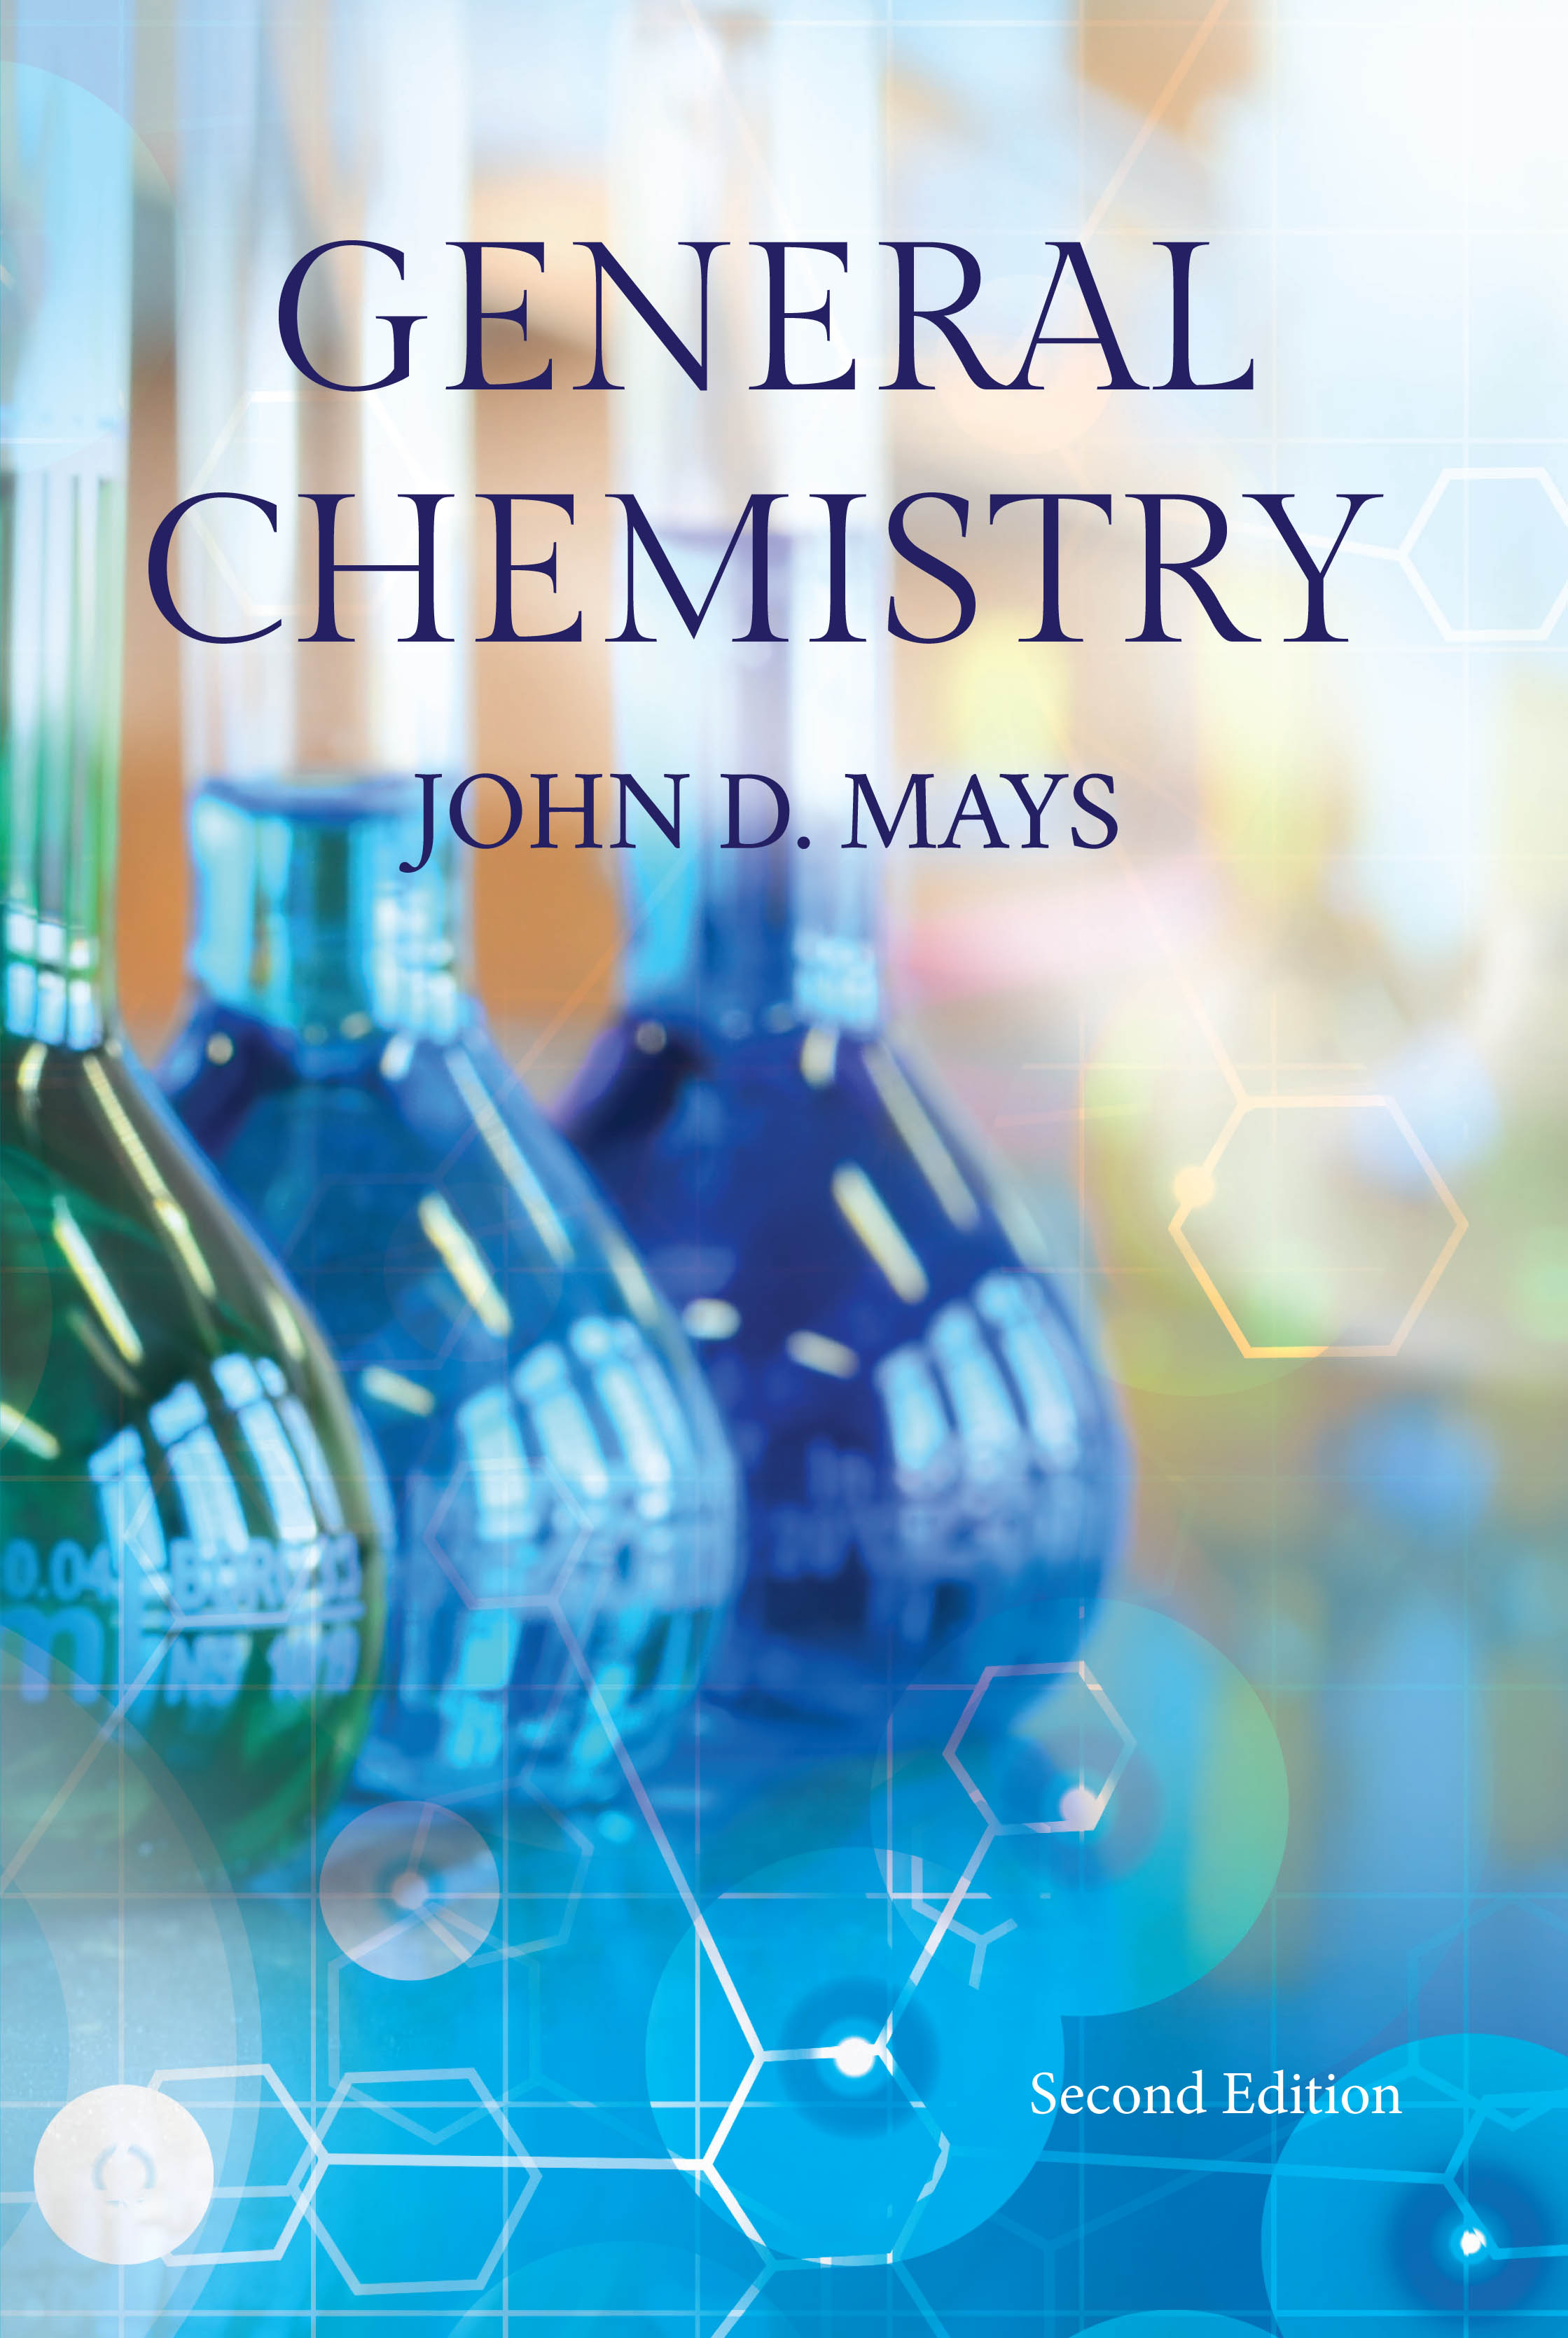 General Chemistry 2nd Edition (1-year license)